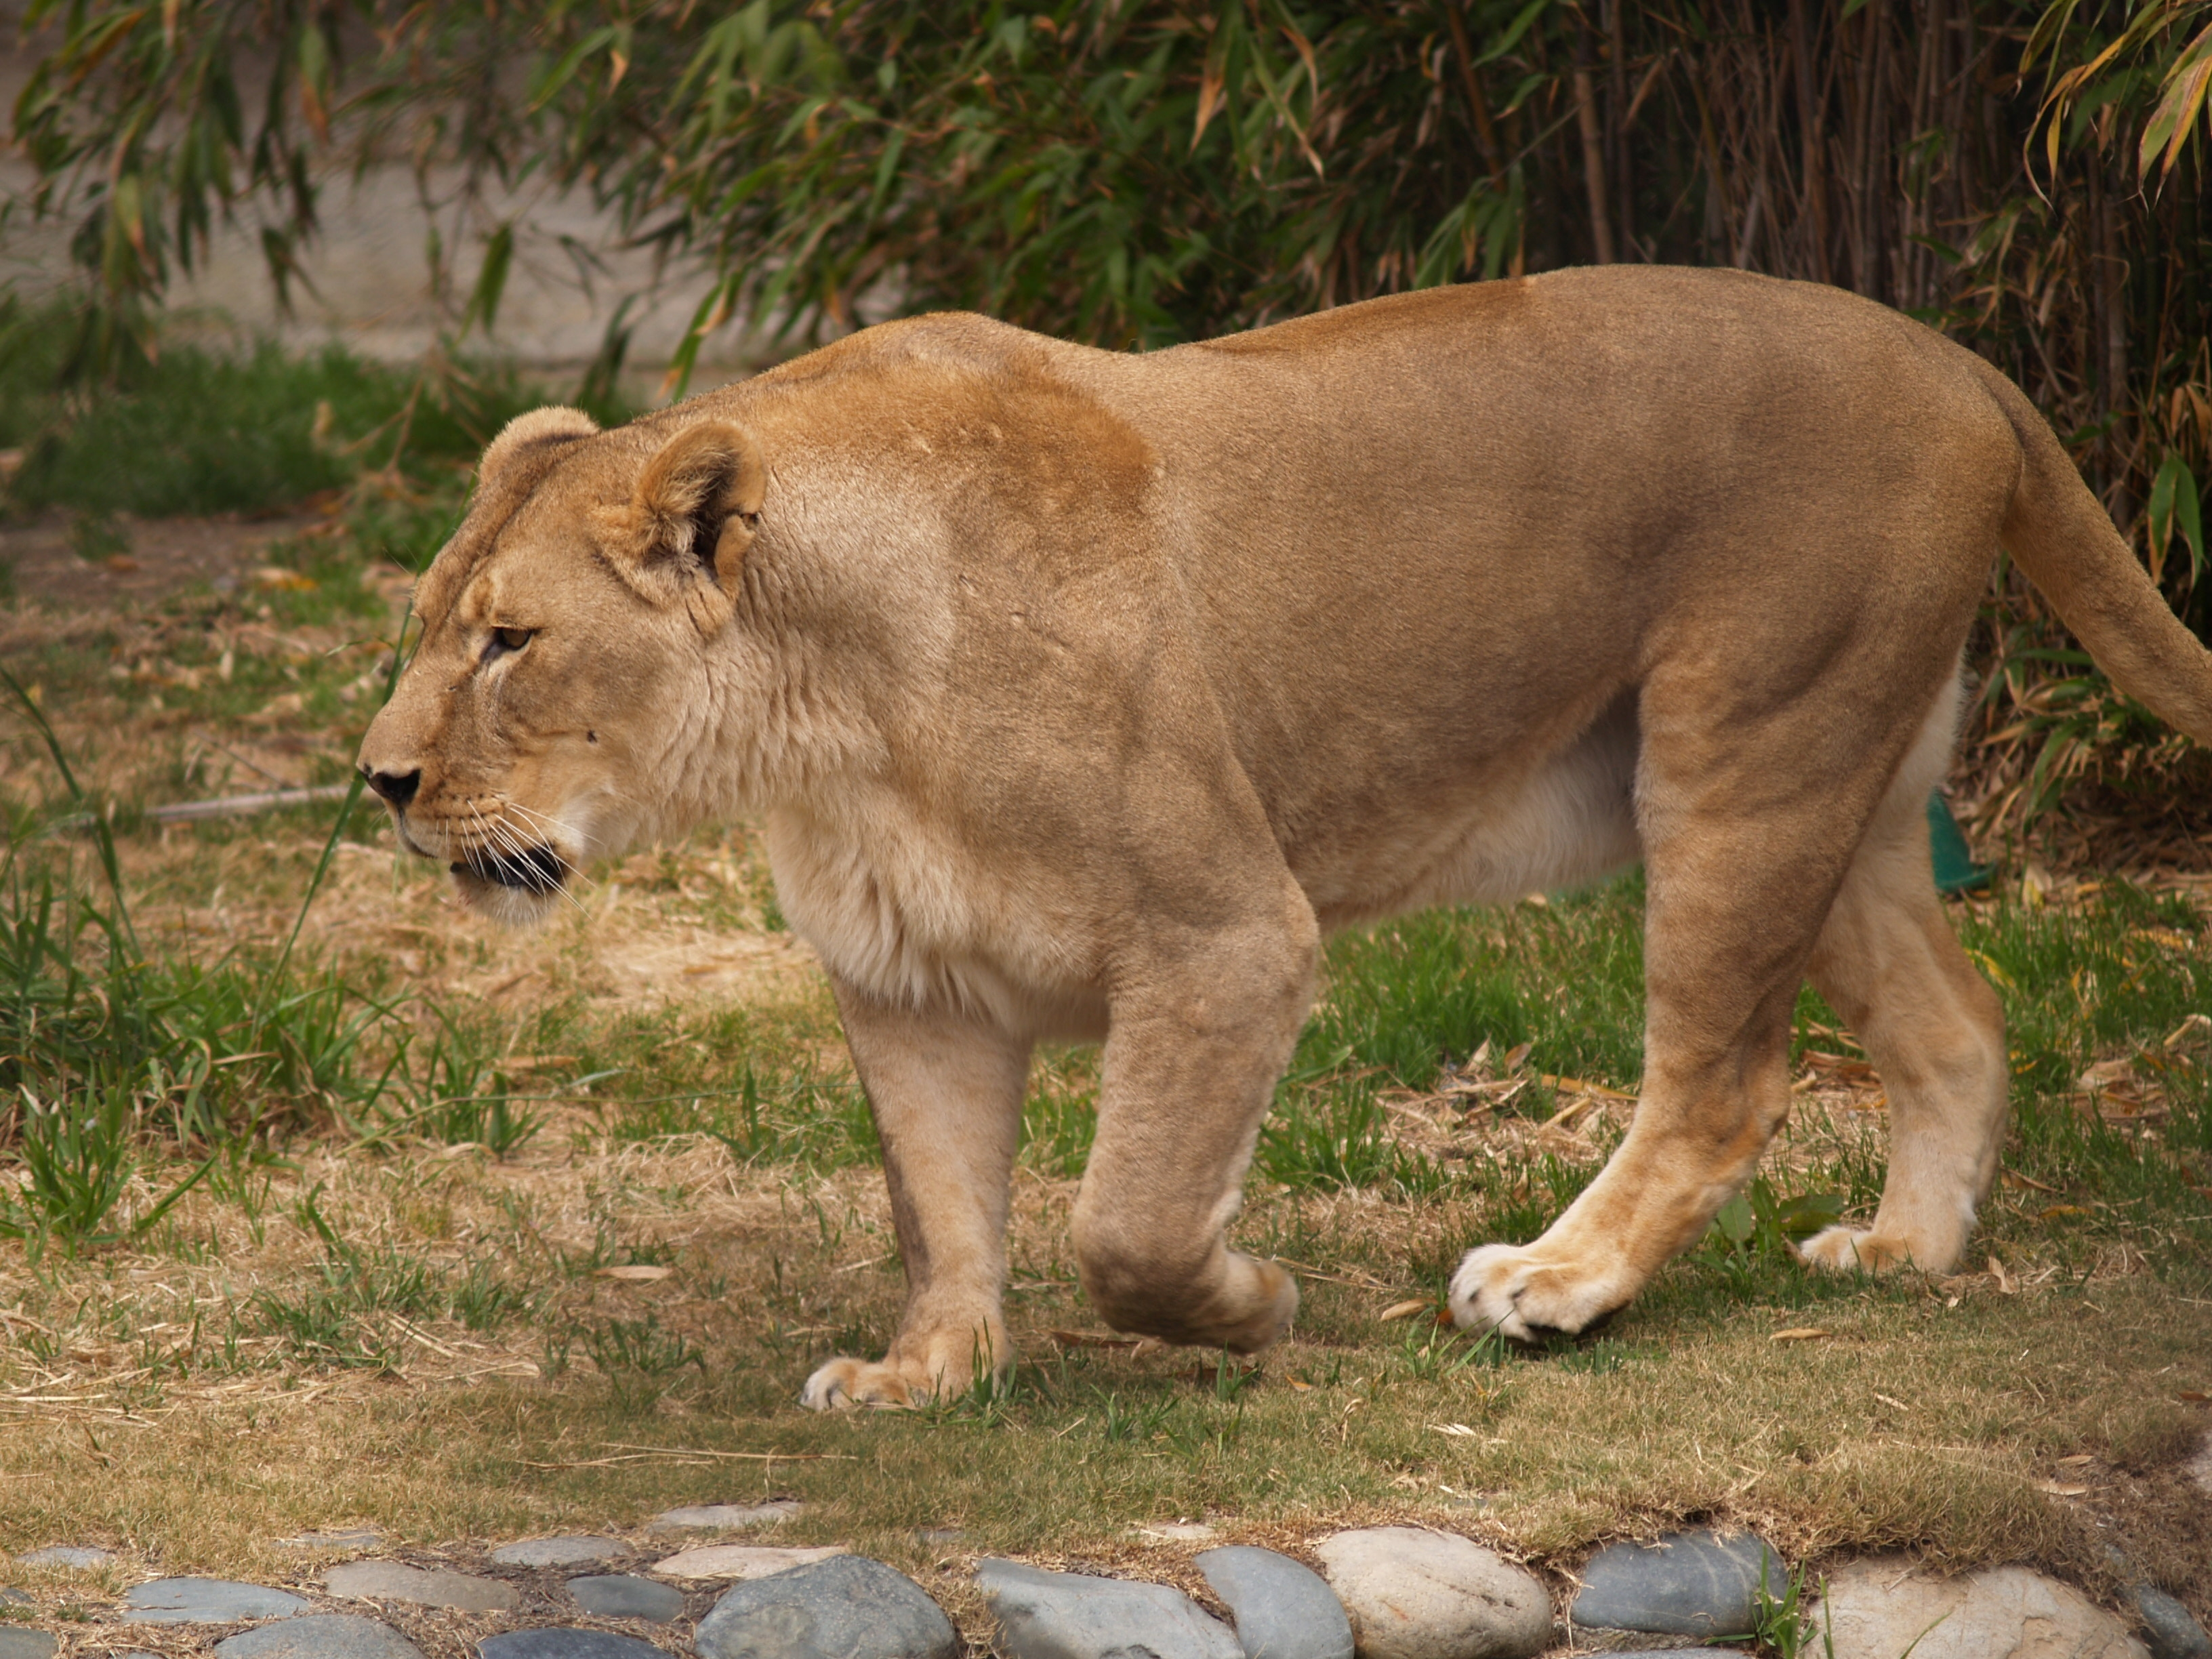 69780 download wallpaper Animals, Lion, Lioness, Stones, Grass, Aggression, Predator, King Of Beasts, King Of The Beasts screensavers and pictures for free